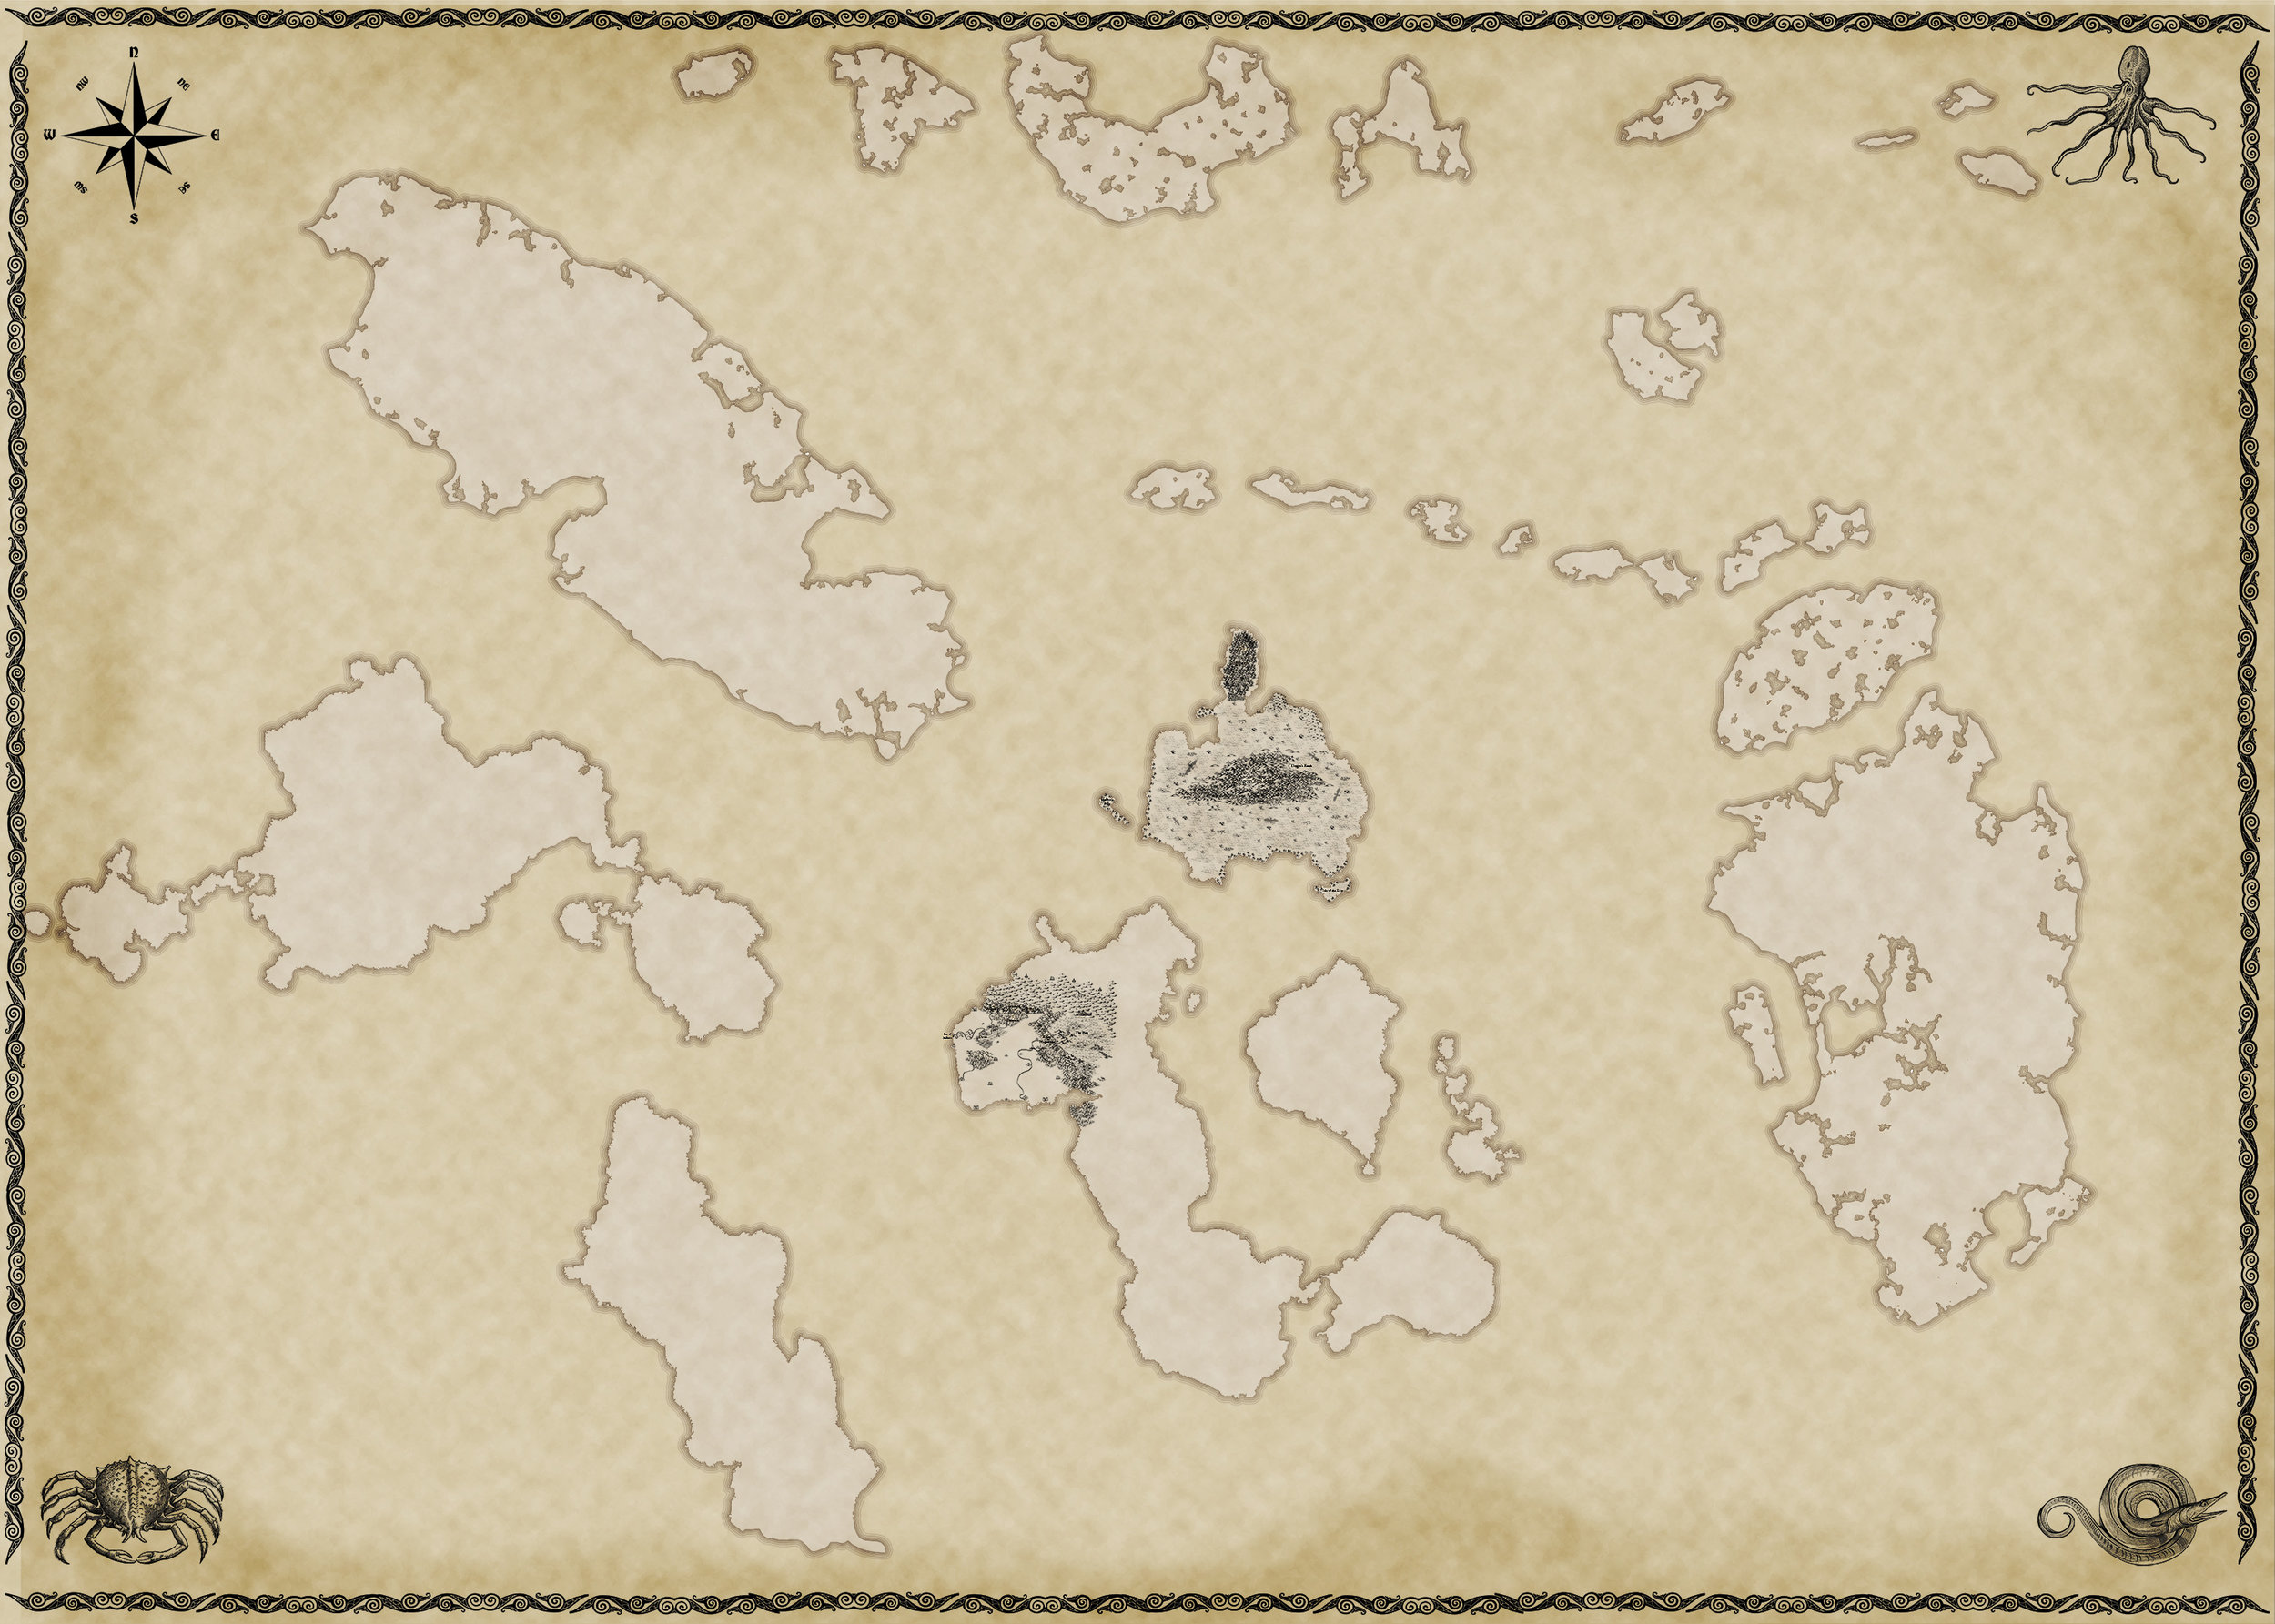 The World Map so far, at 10 percent scale